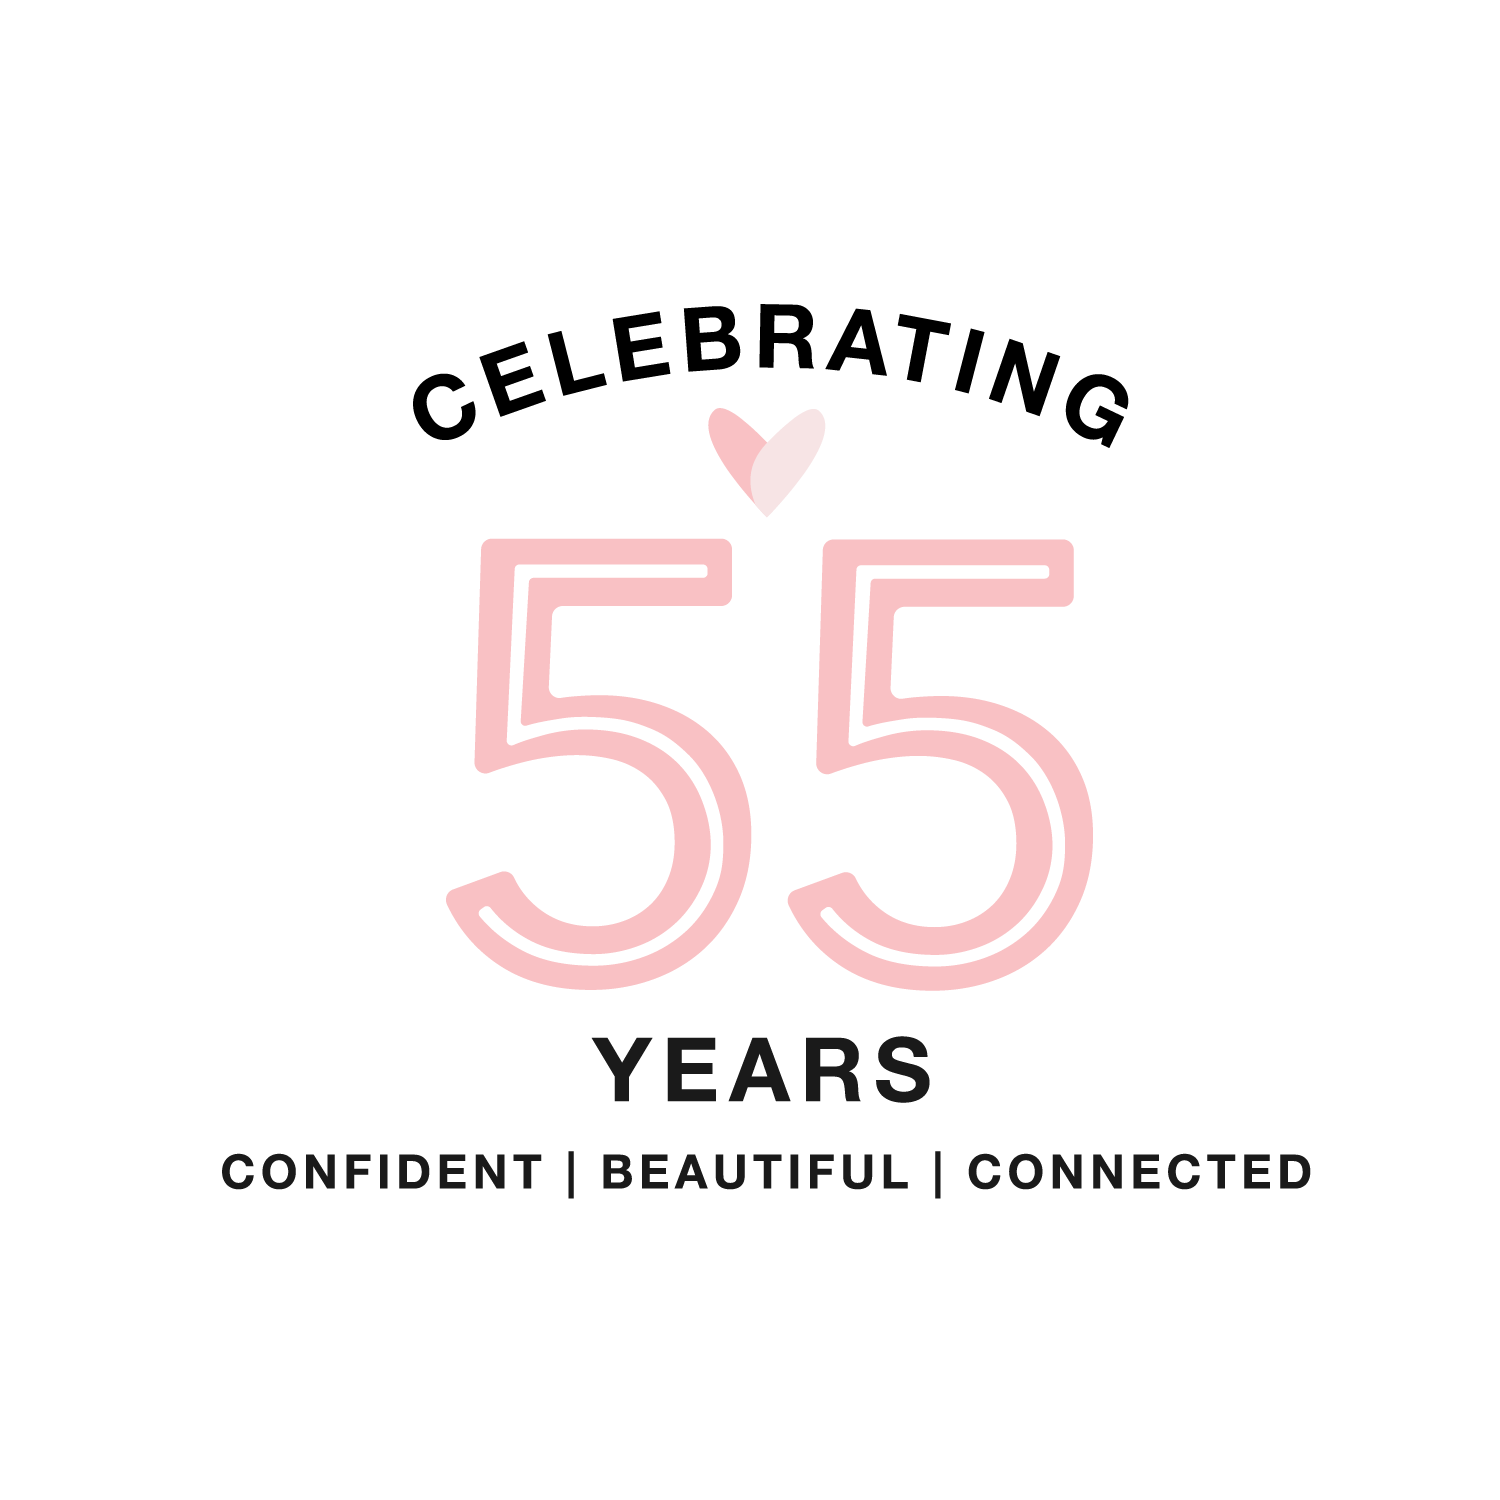 55Years-logo-01.png